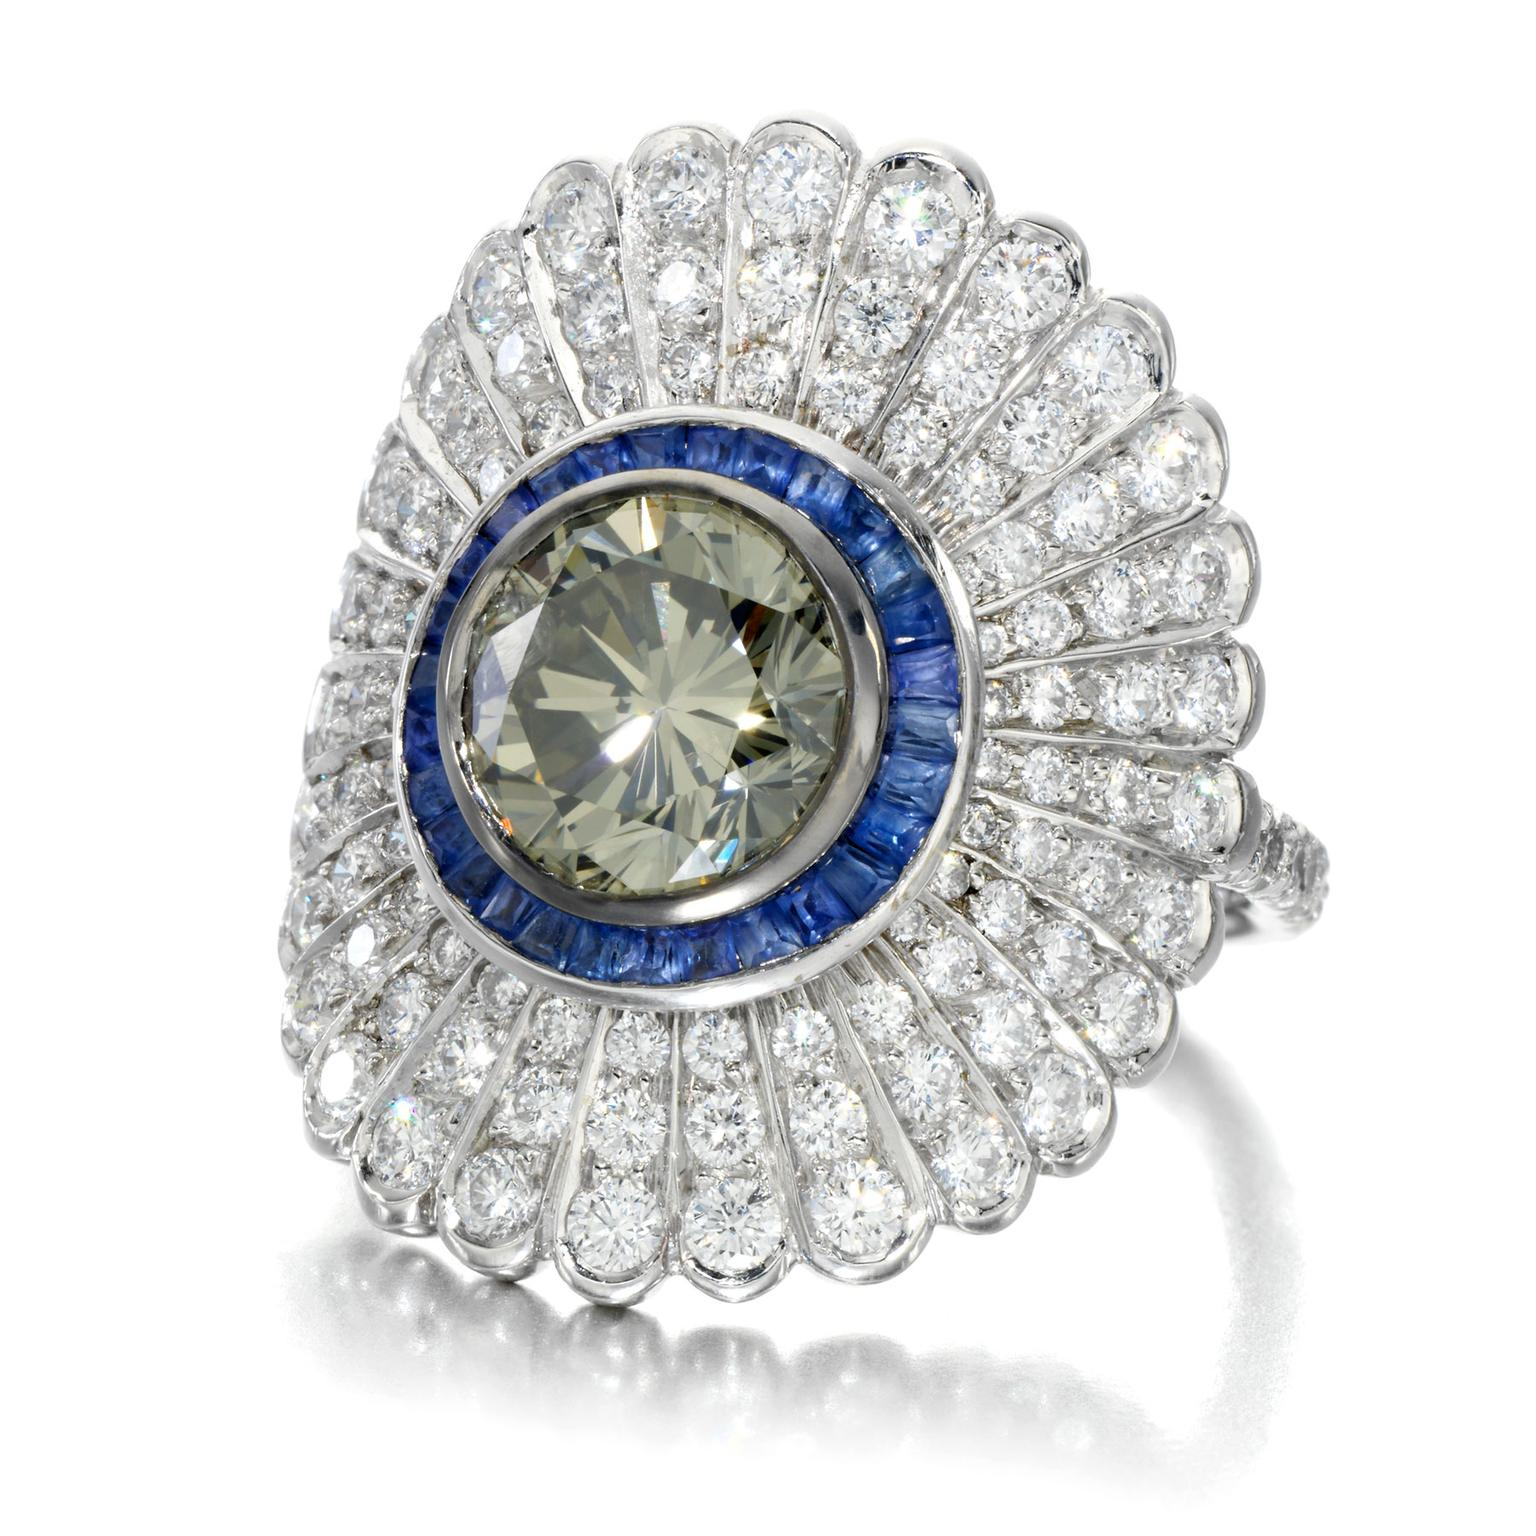 Jessica McCormack 1.86-carat Fancy Grey diamond Daisy ring